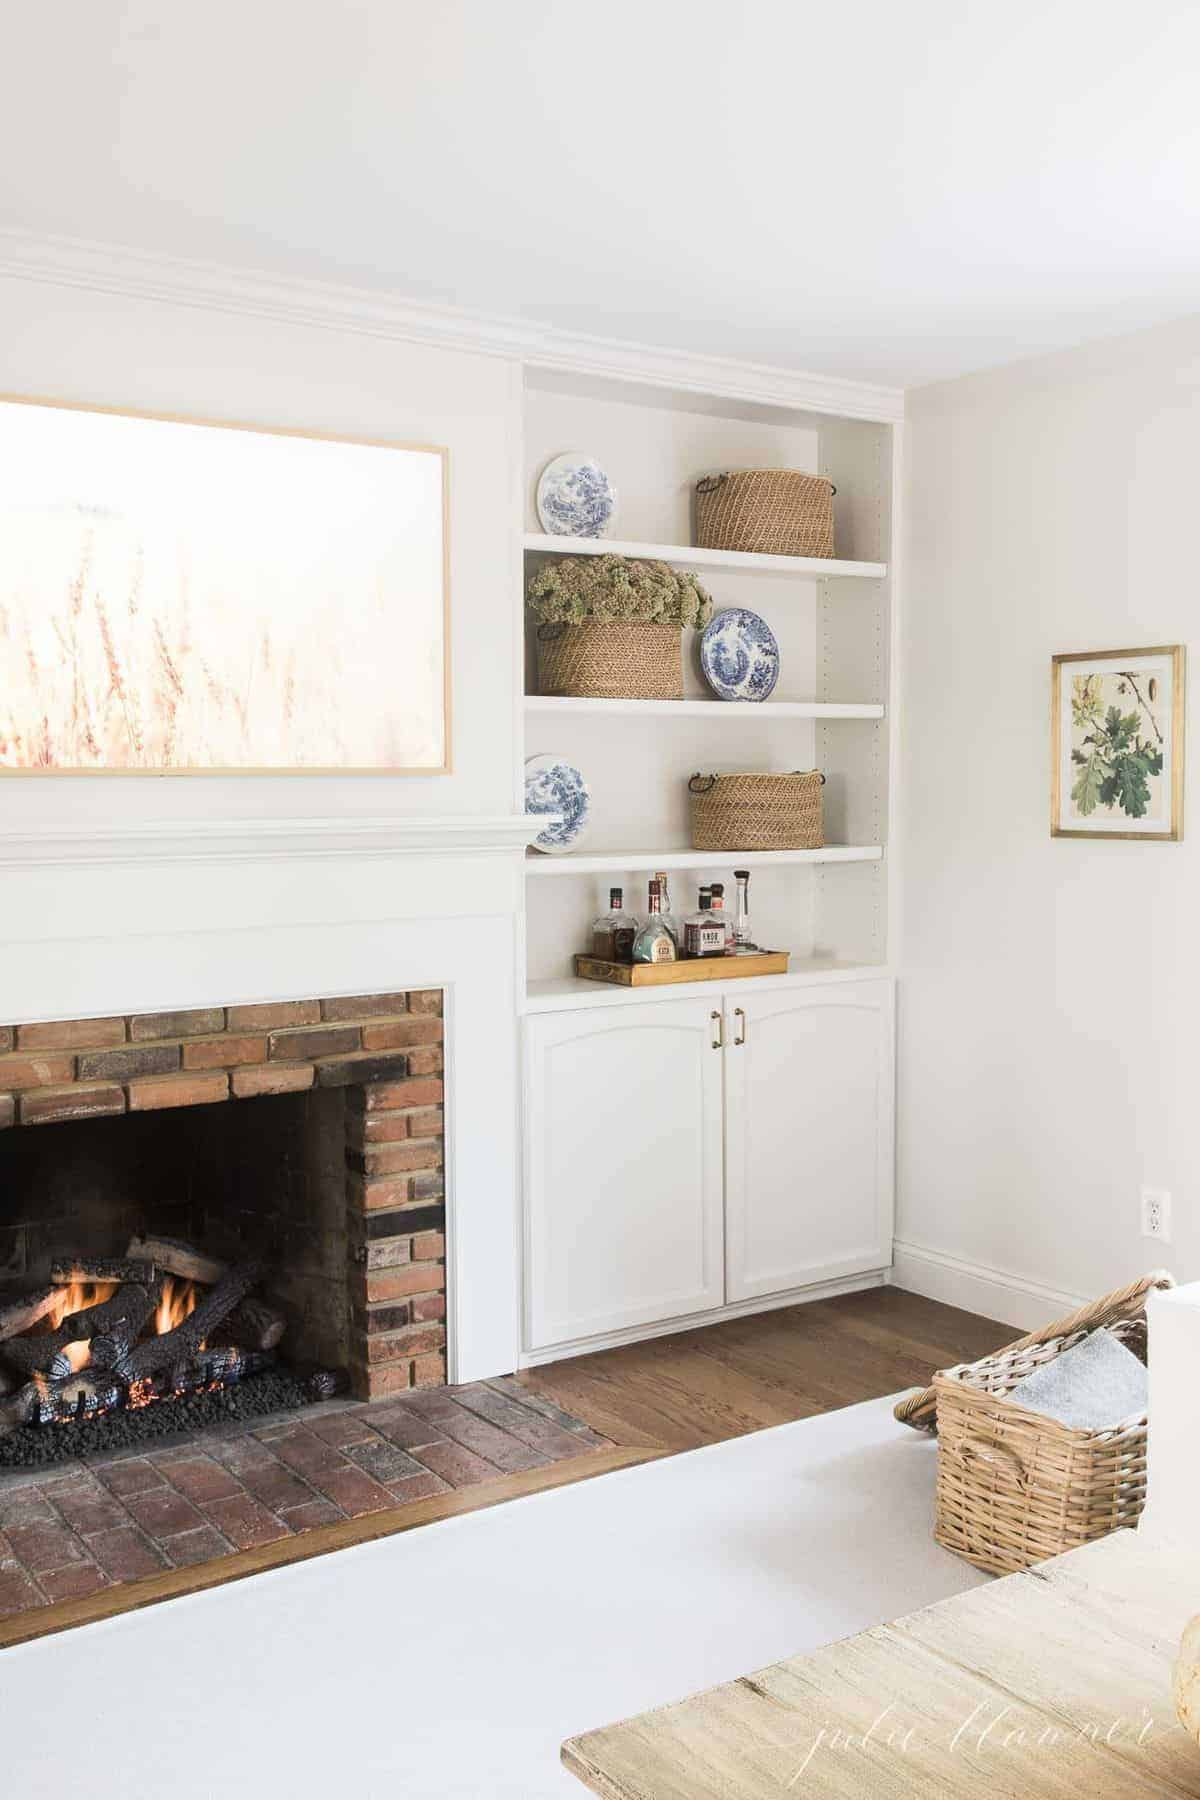 Living room fireplace burning with artwork above and bookshelves on the side. #falllivingroom